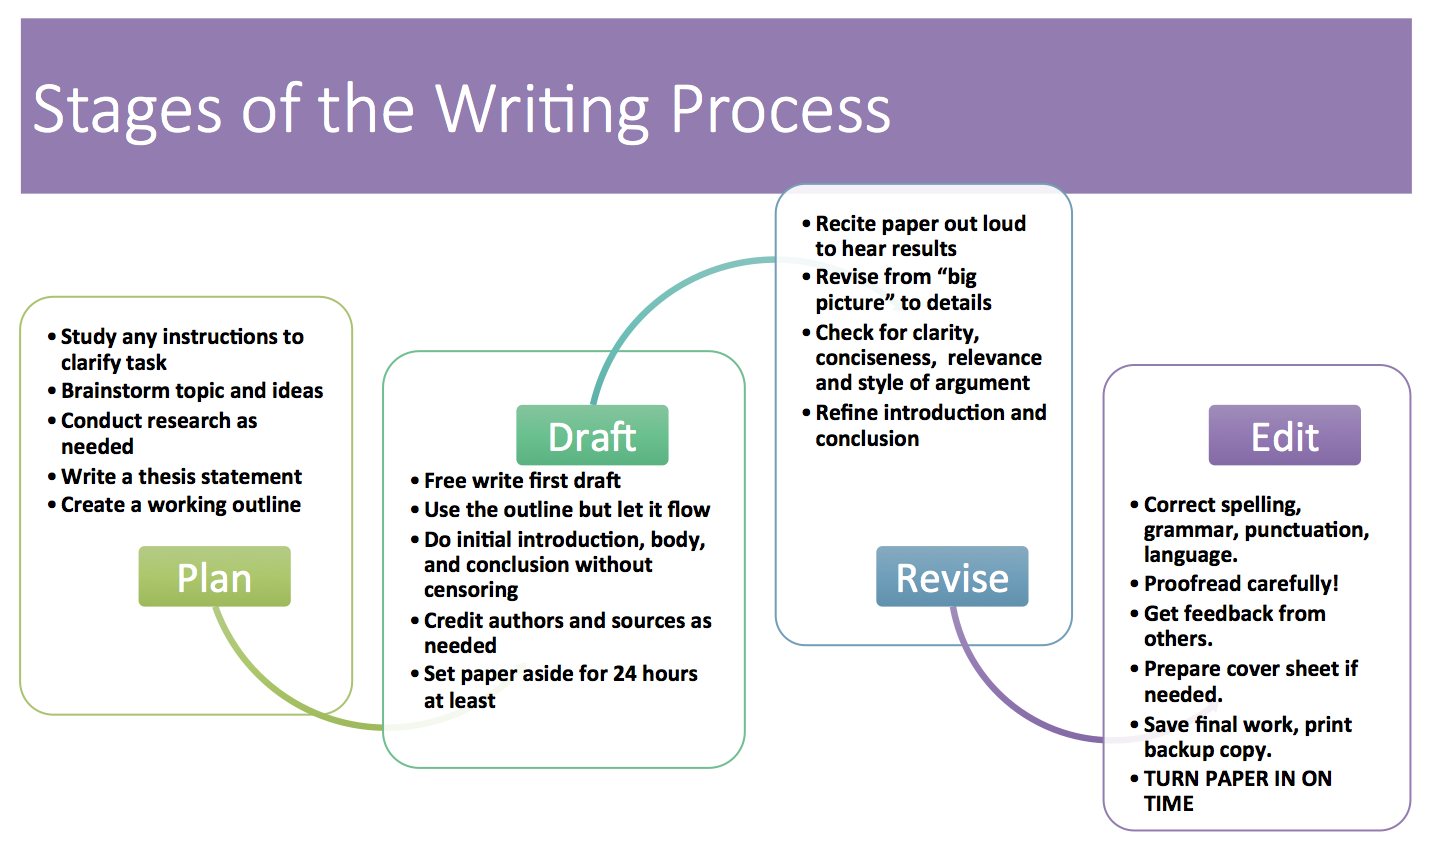 Stages of the Writing Process